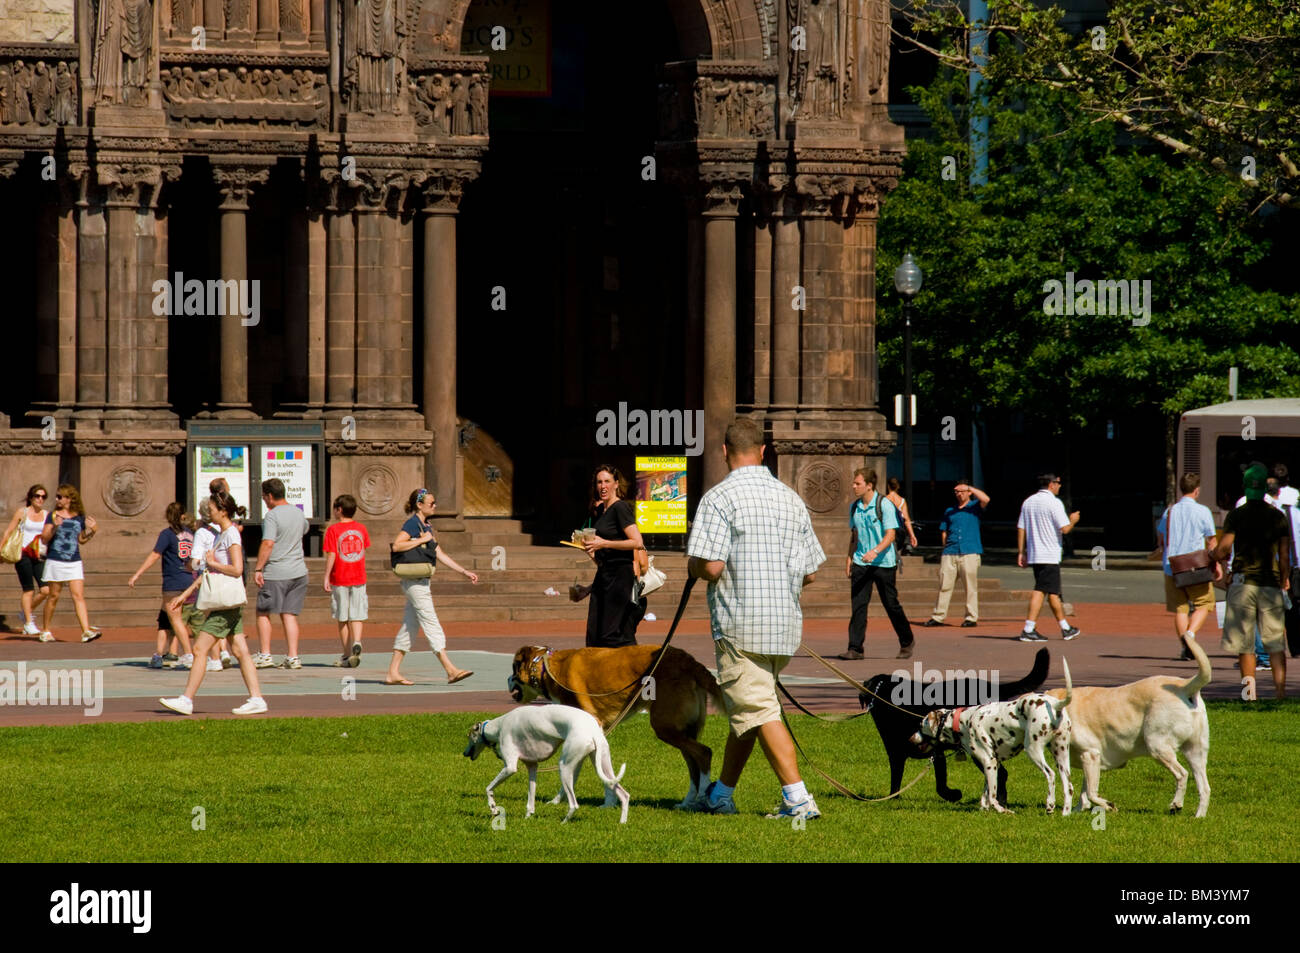 Dog walker downtown Boston - Stock Image